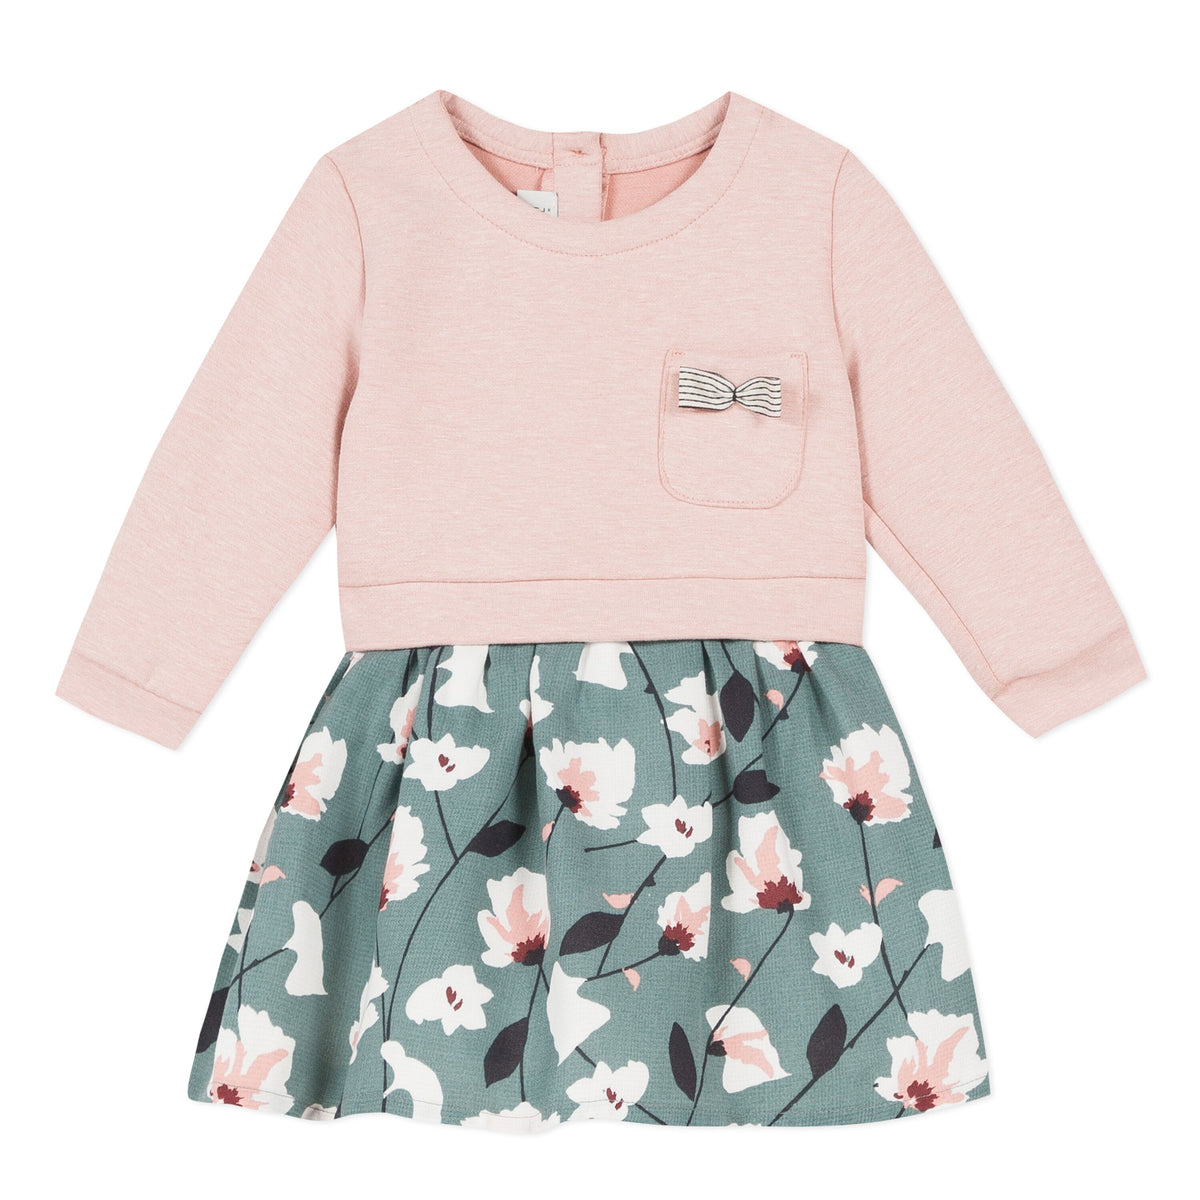 Jean Bourget baby girls dress featuring a rose colored top, floral bottom and a front accent pocket.